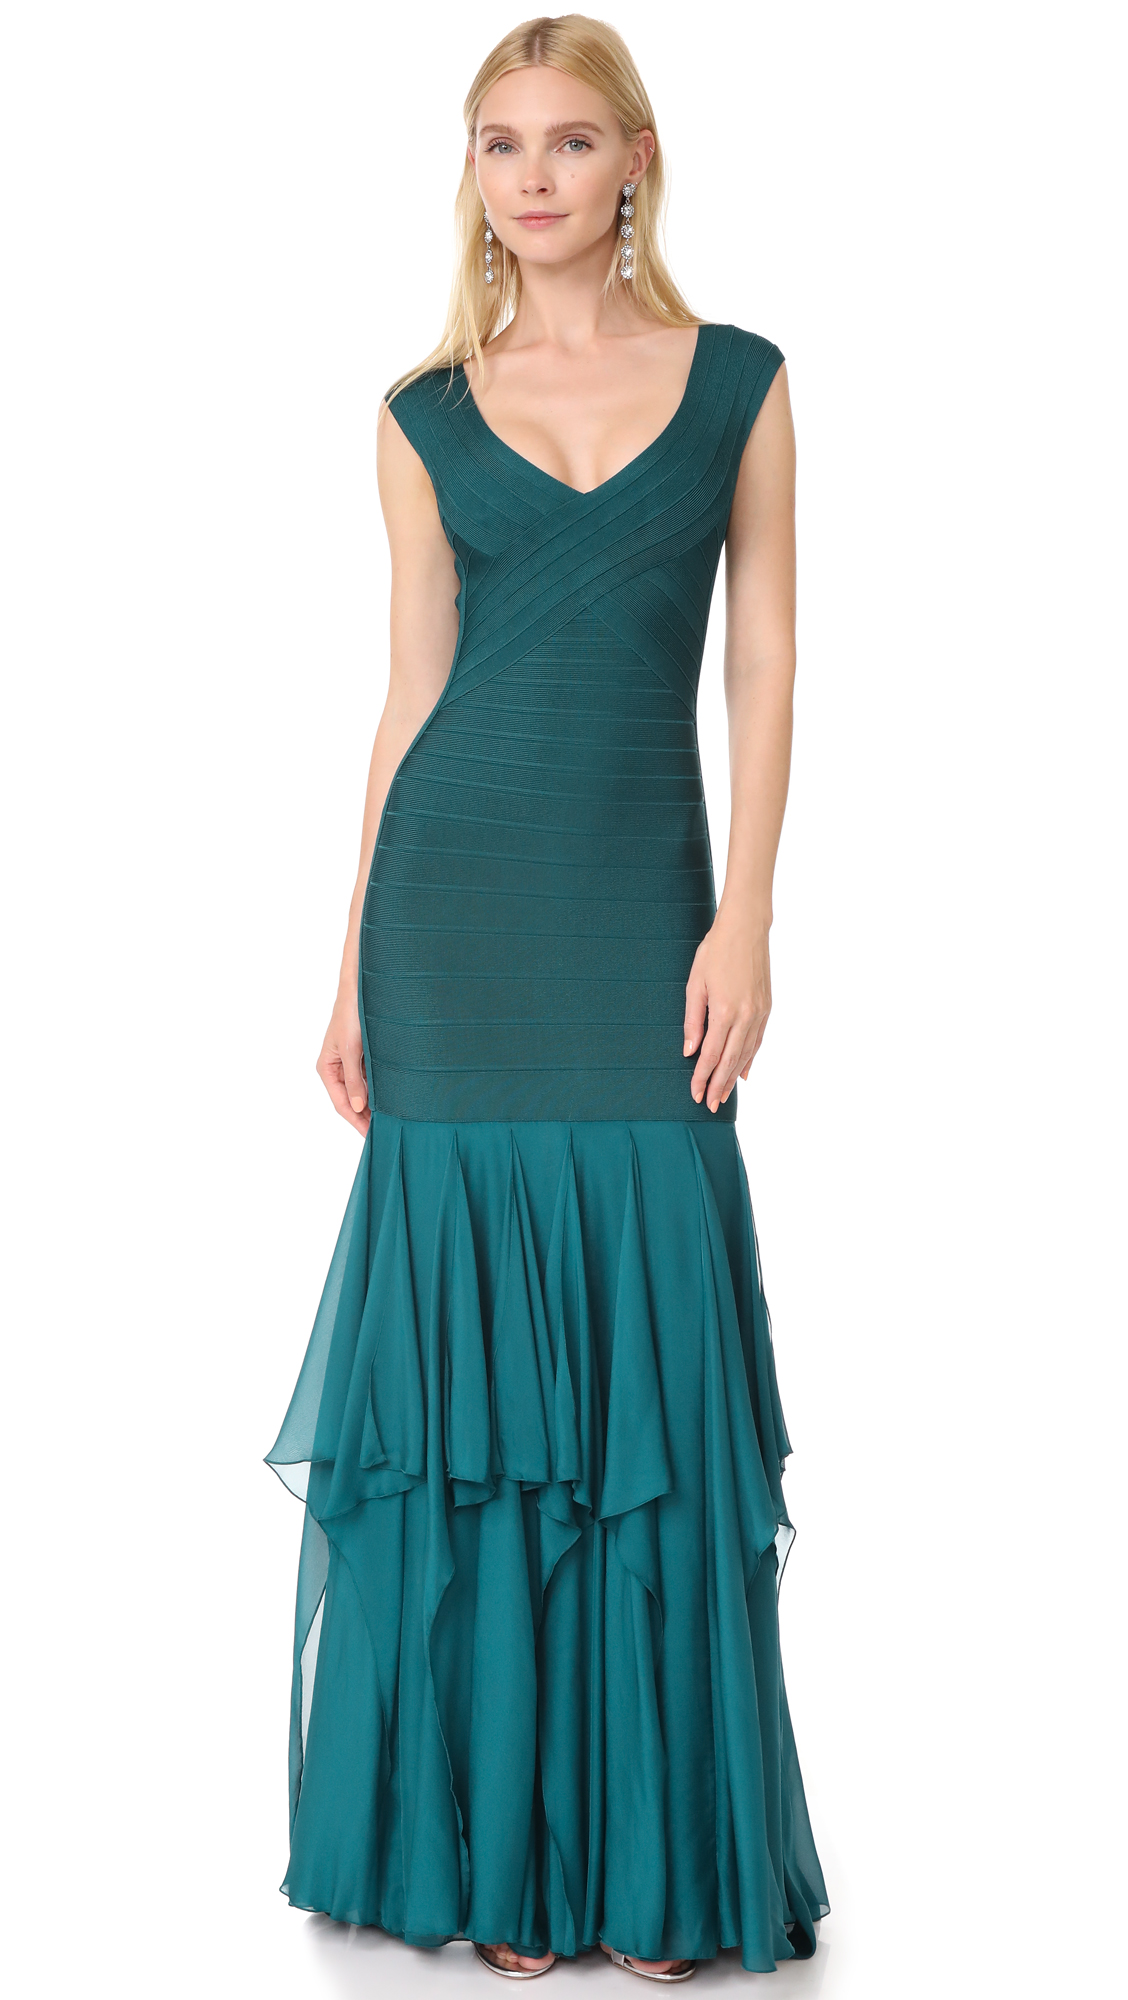 Herve Leger Chiffon Skirt Gown - Slate Teal